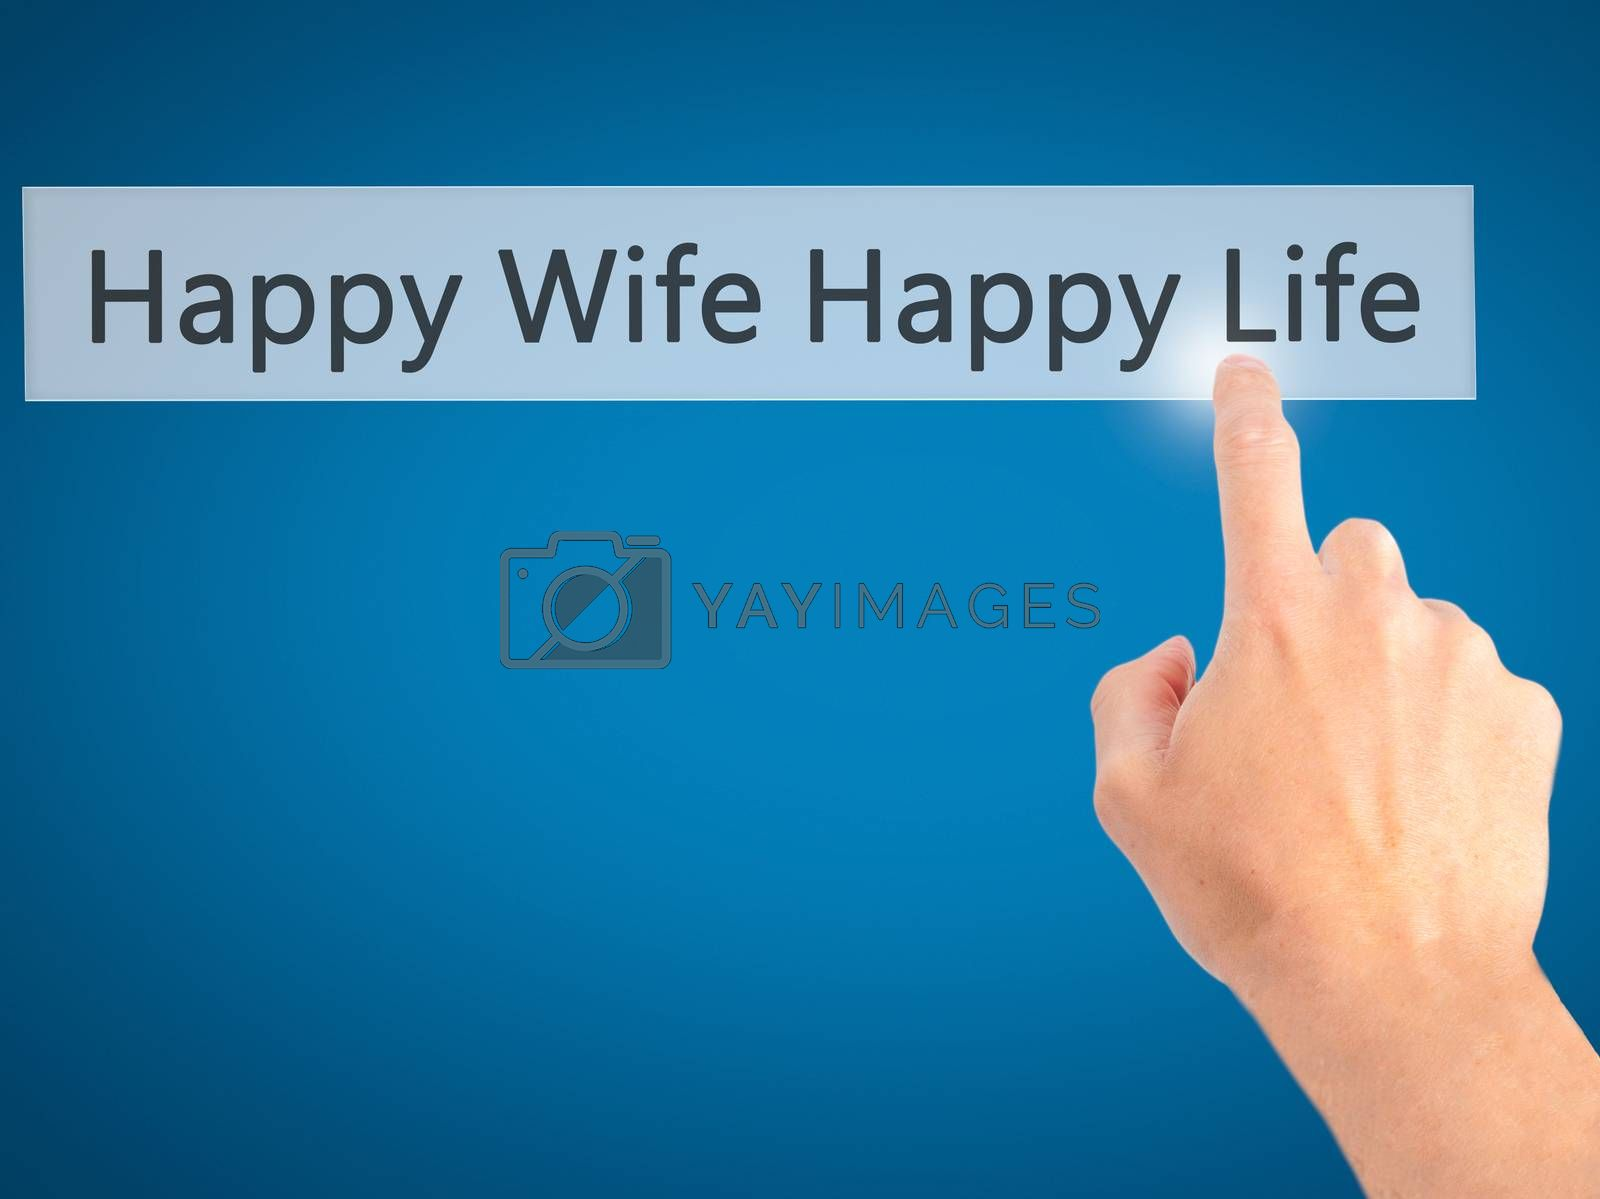 Happy Wife Happy Life - Hand pressing a button on blurred backgr by netsay.net